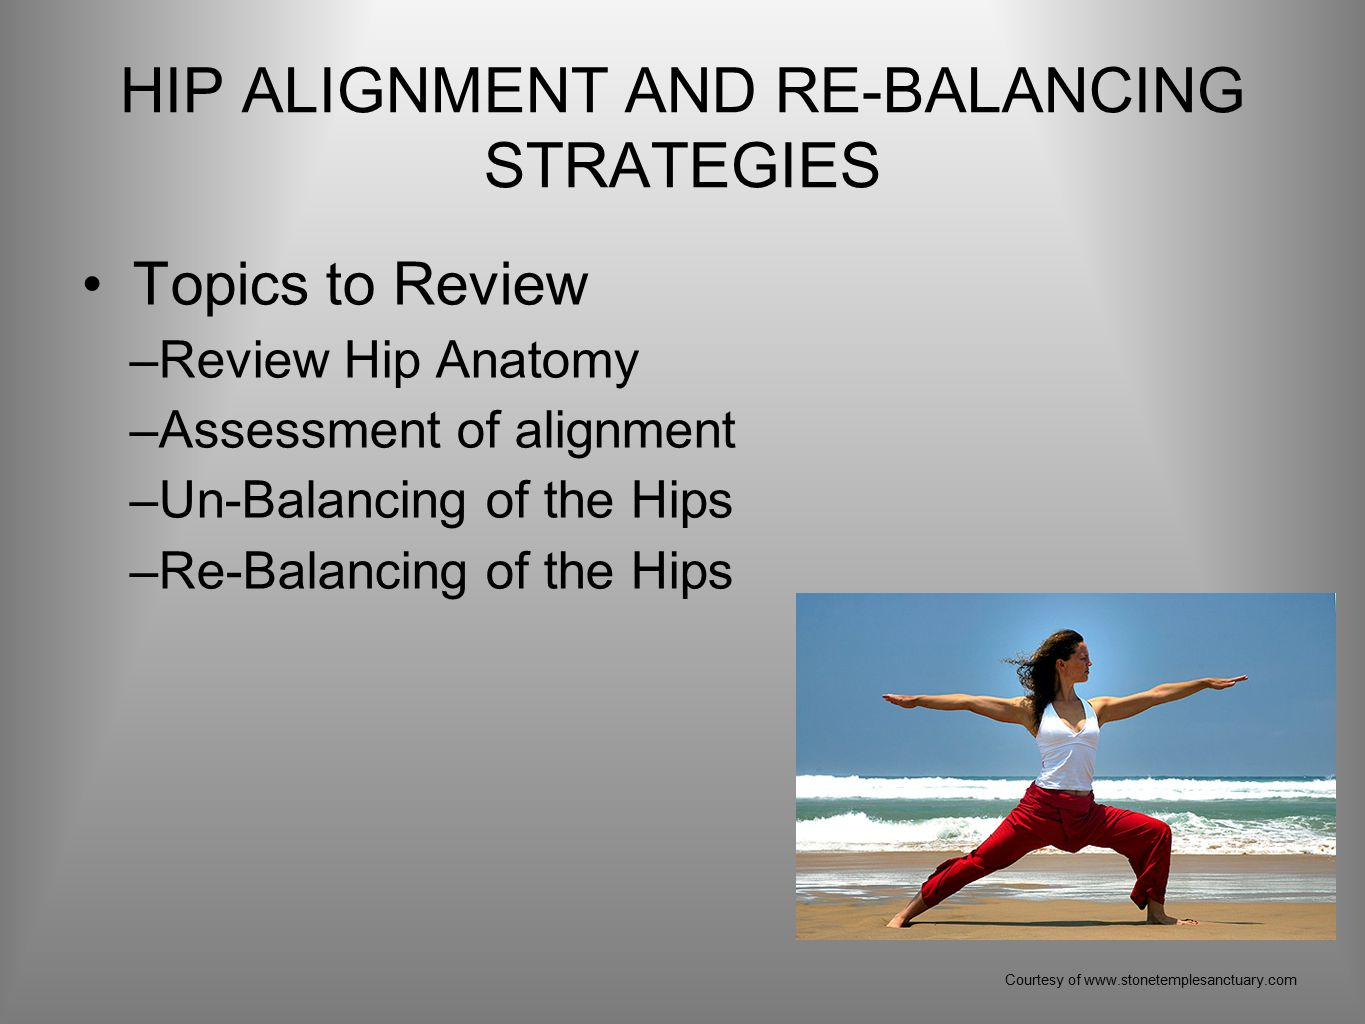 HIP ALIGNMENT AND RE-BALANCING STRATEGIES Topics to Review –Review Hip Anatomy –Assessment of alignment –Un-Balancing of the Hips –Re-Balancing of the Hips Courtesy of www.stonetemplesanctuary.com